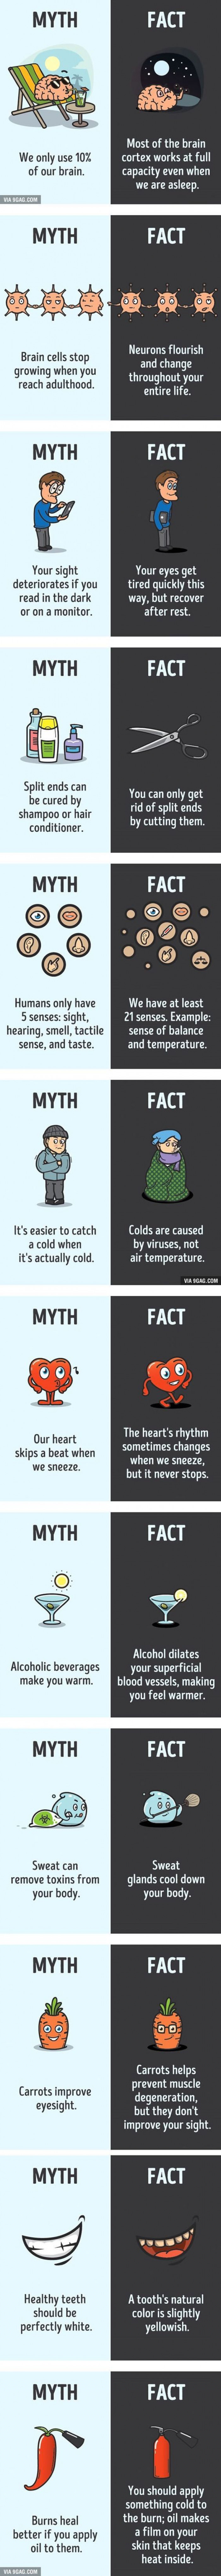 12 Myths That You Thought Were True